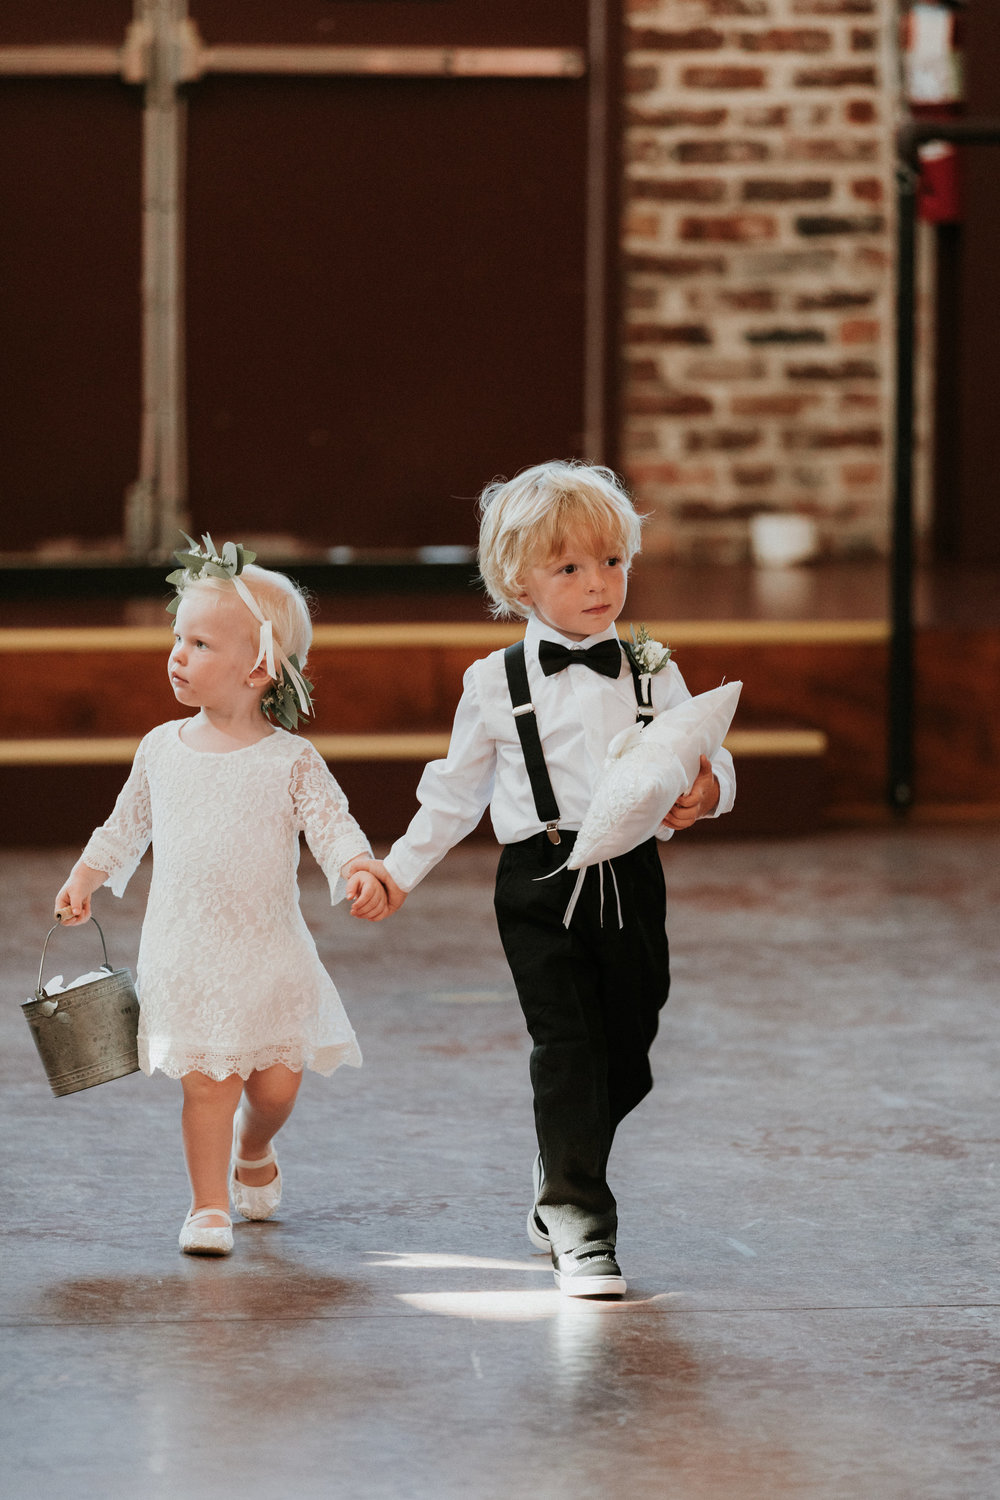 camber-and-drew-wedding-ethan-gaskill-photography(503of958).jpg